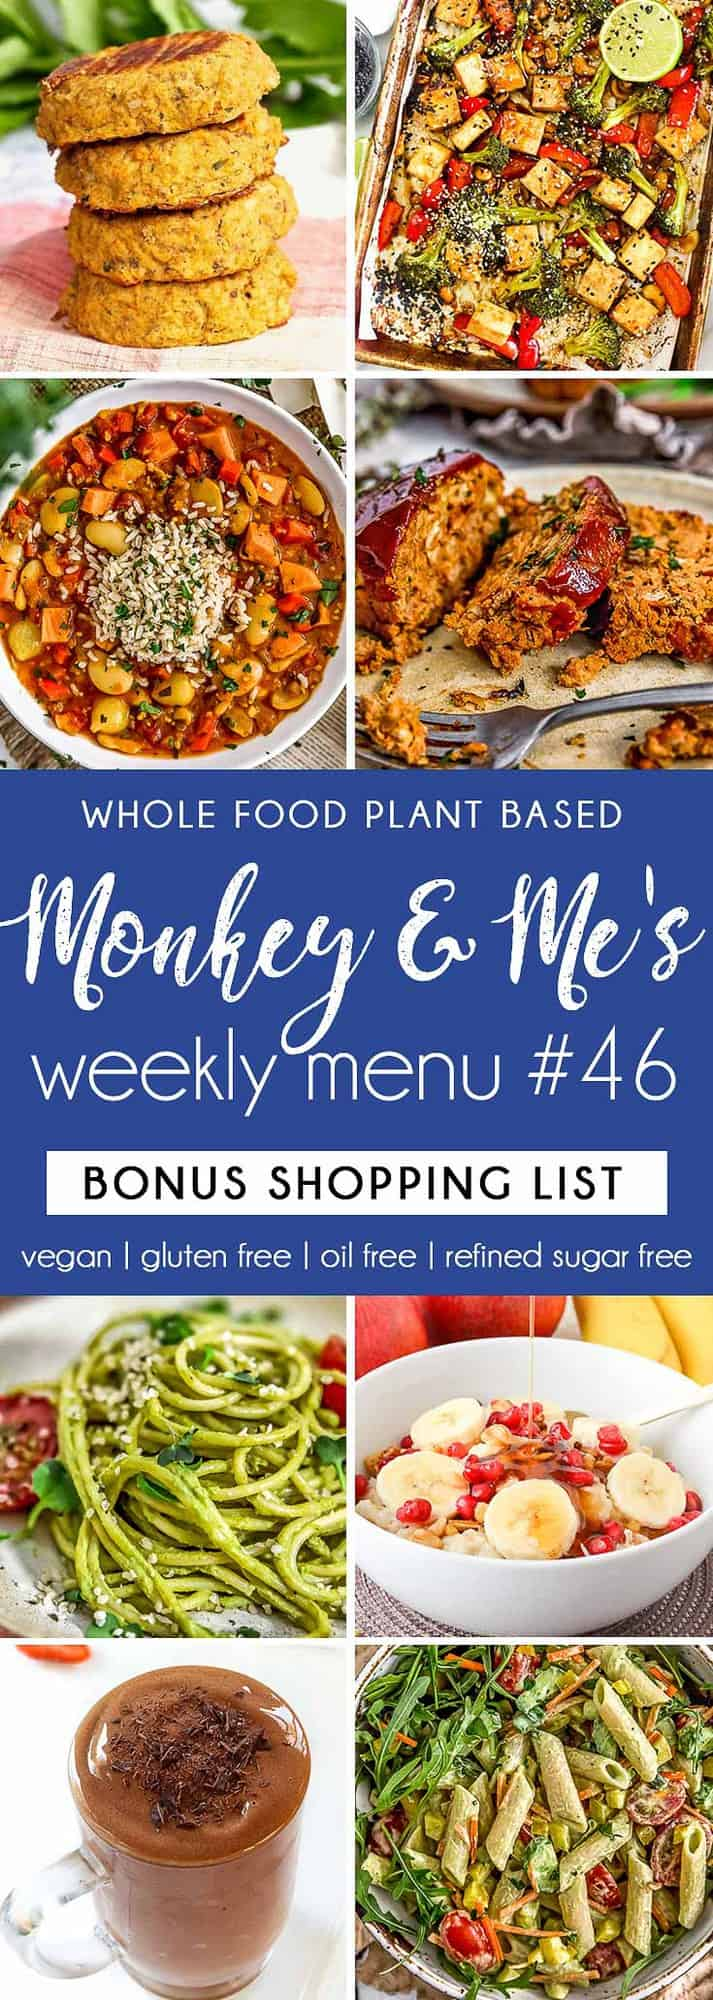 Monkey and Me's Menu 46 featuring 8 recipes